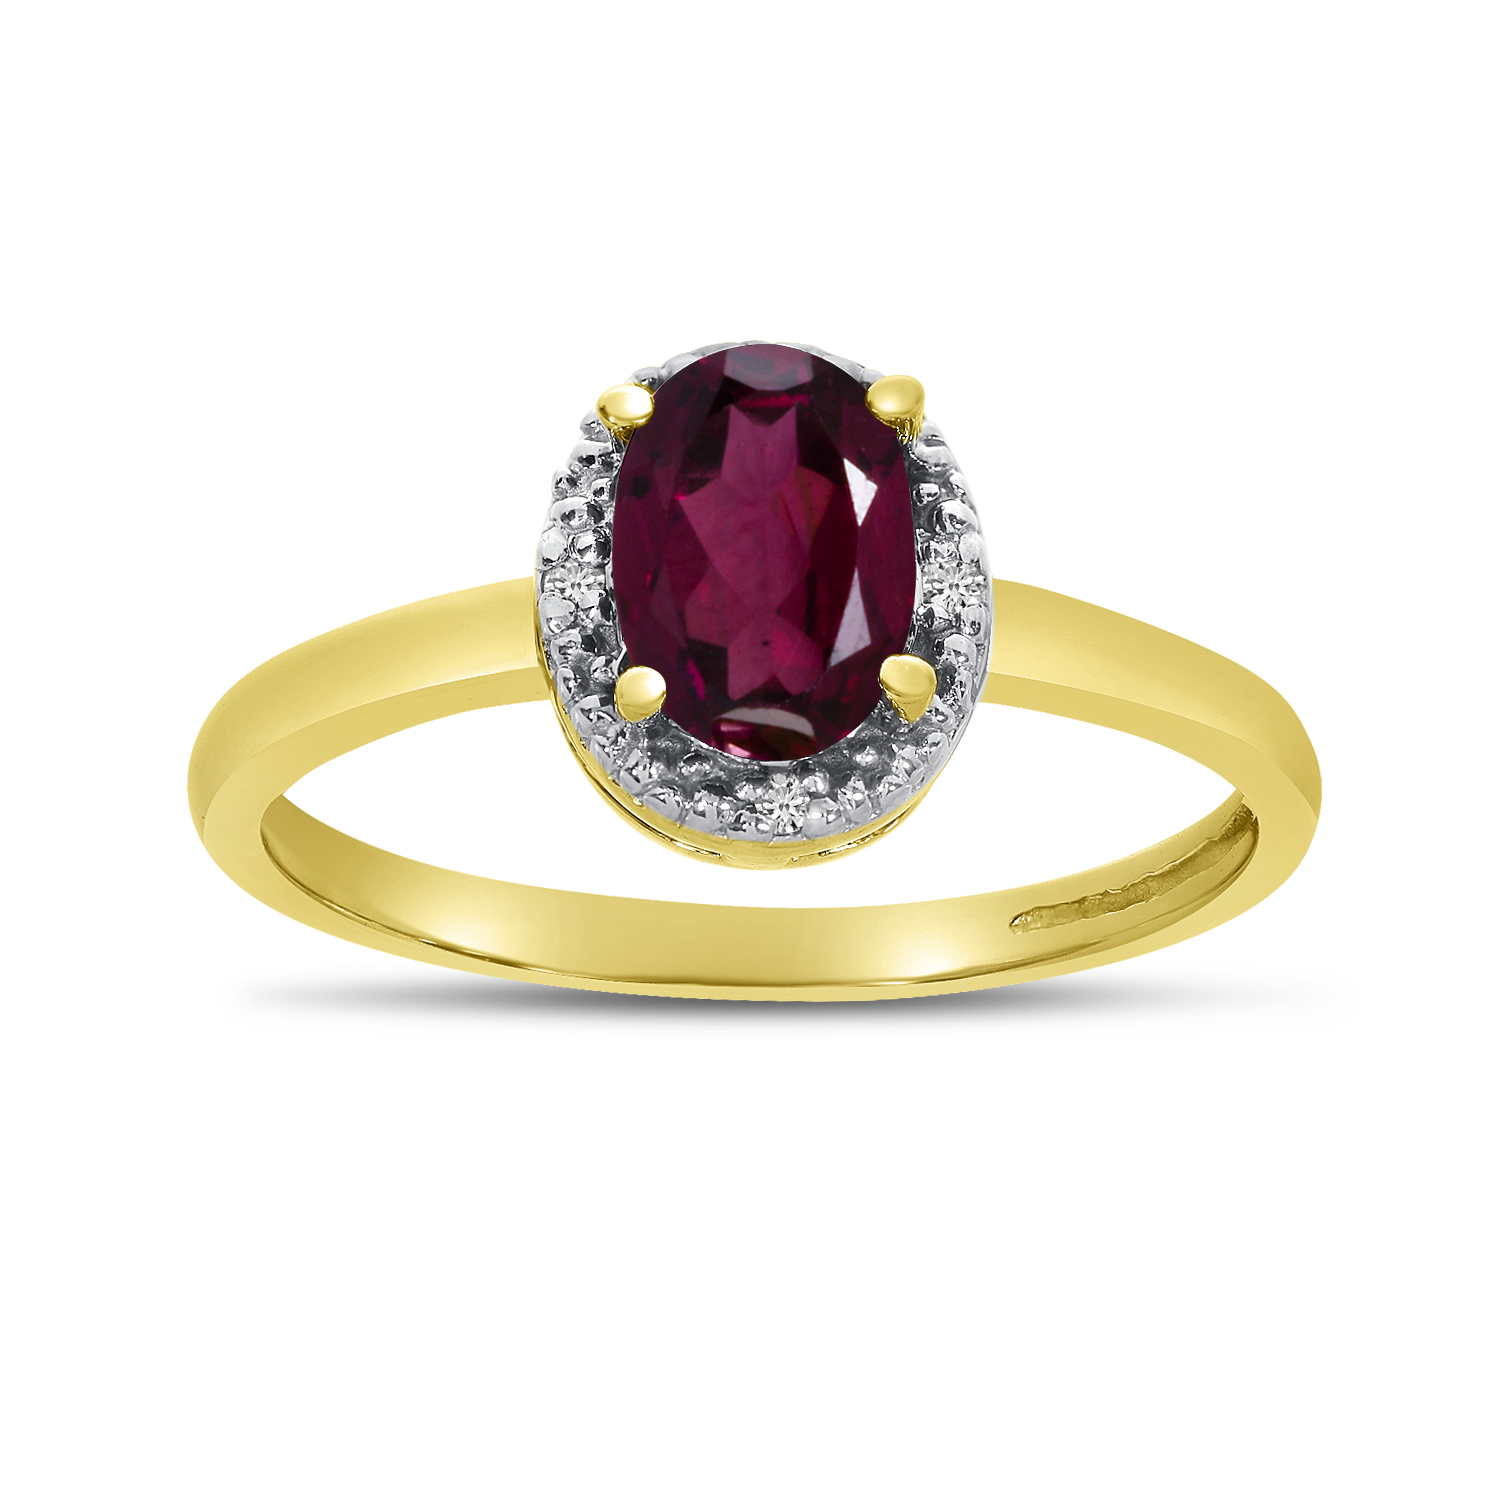 Details about  /14k White Gold Oval Rhodolite Garnet And Diamond Ring